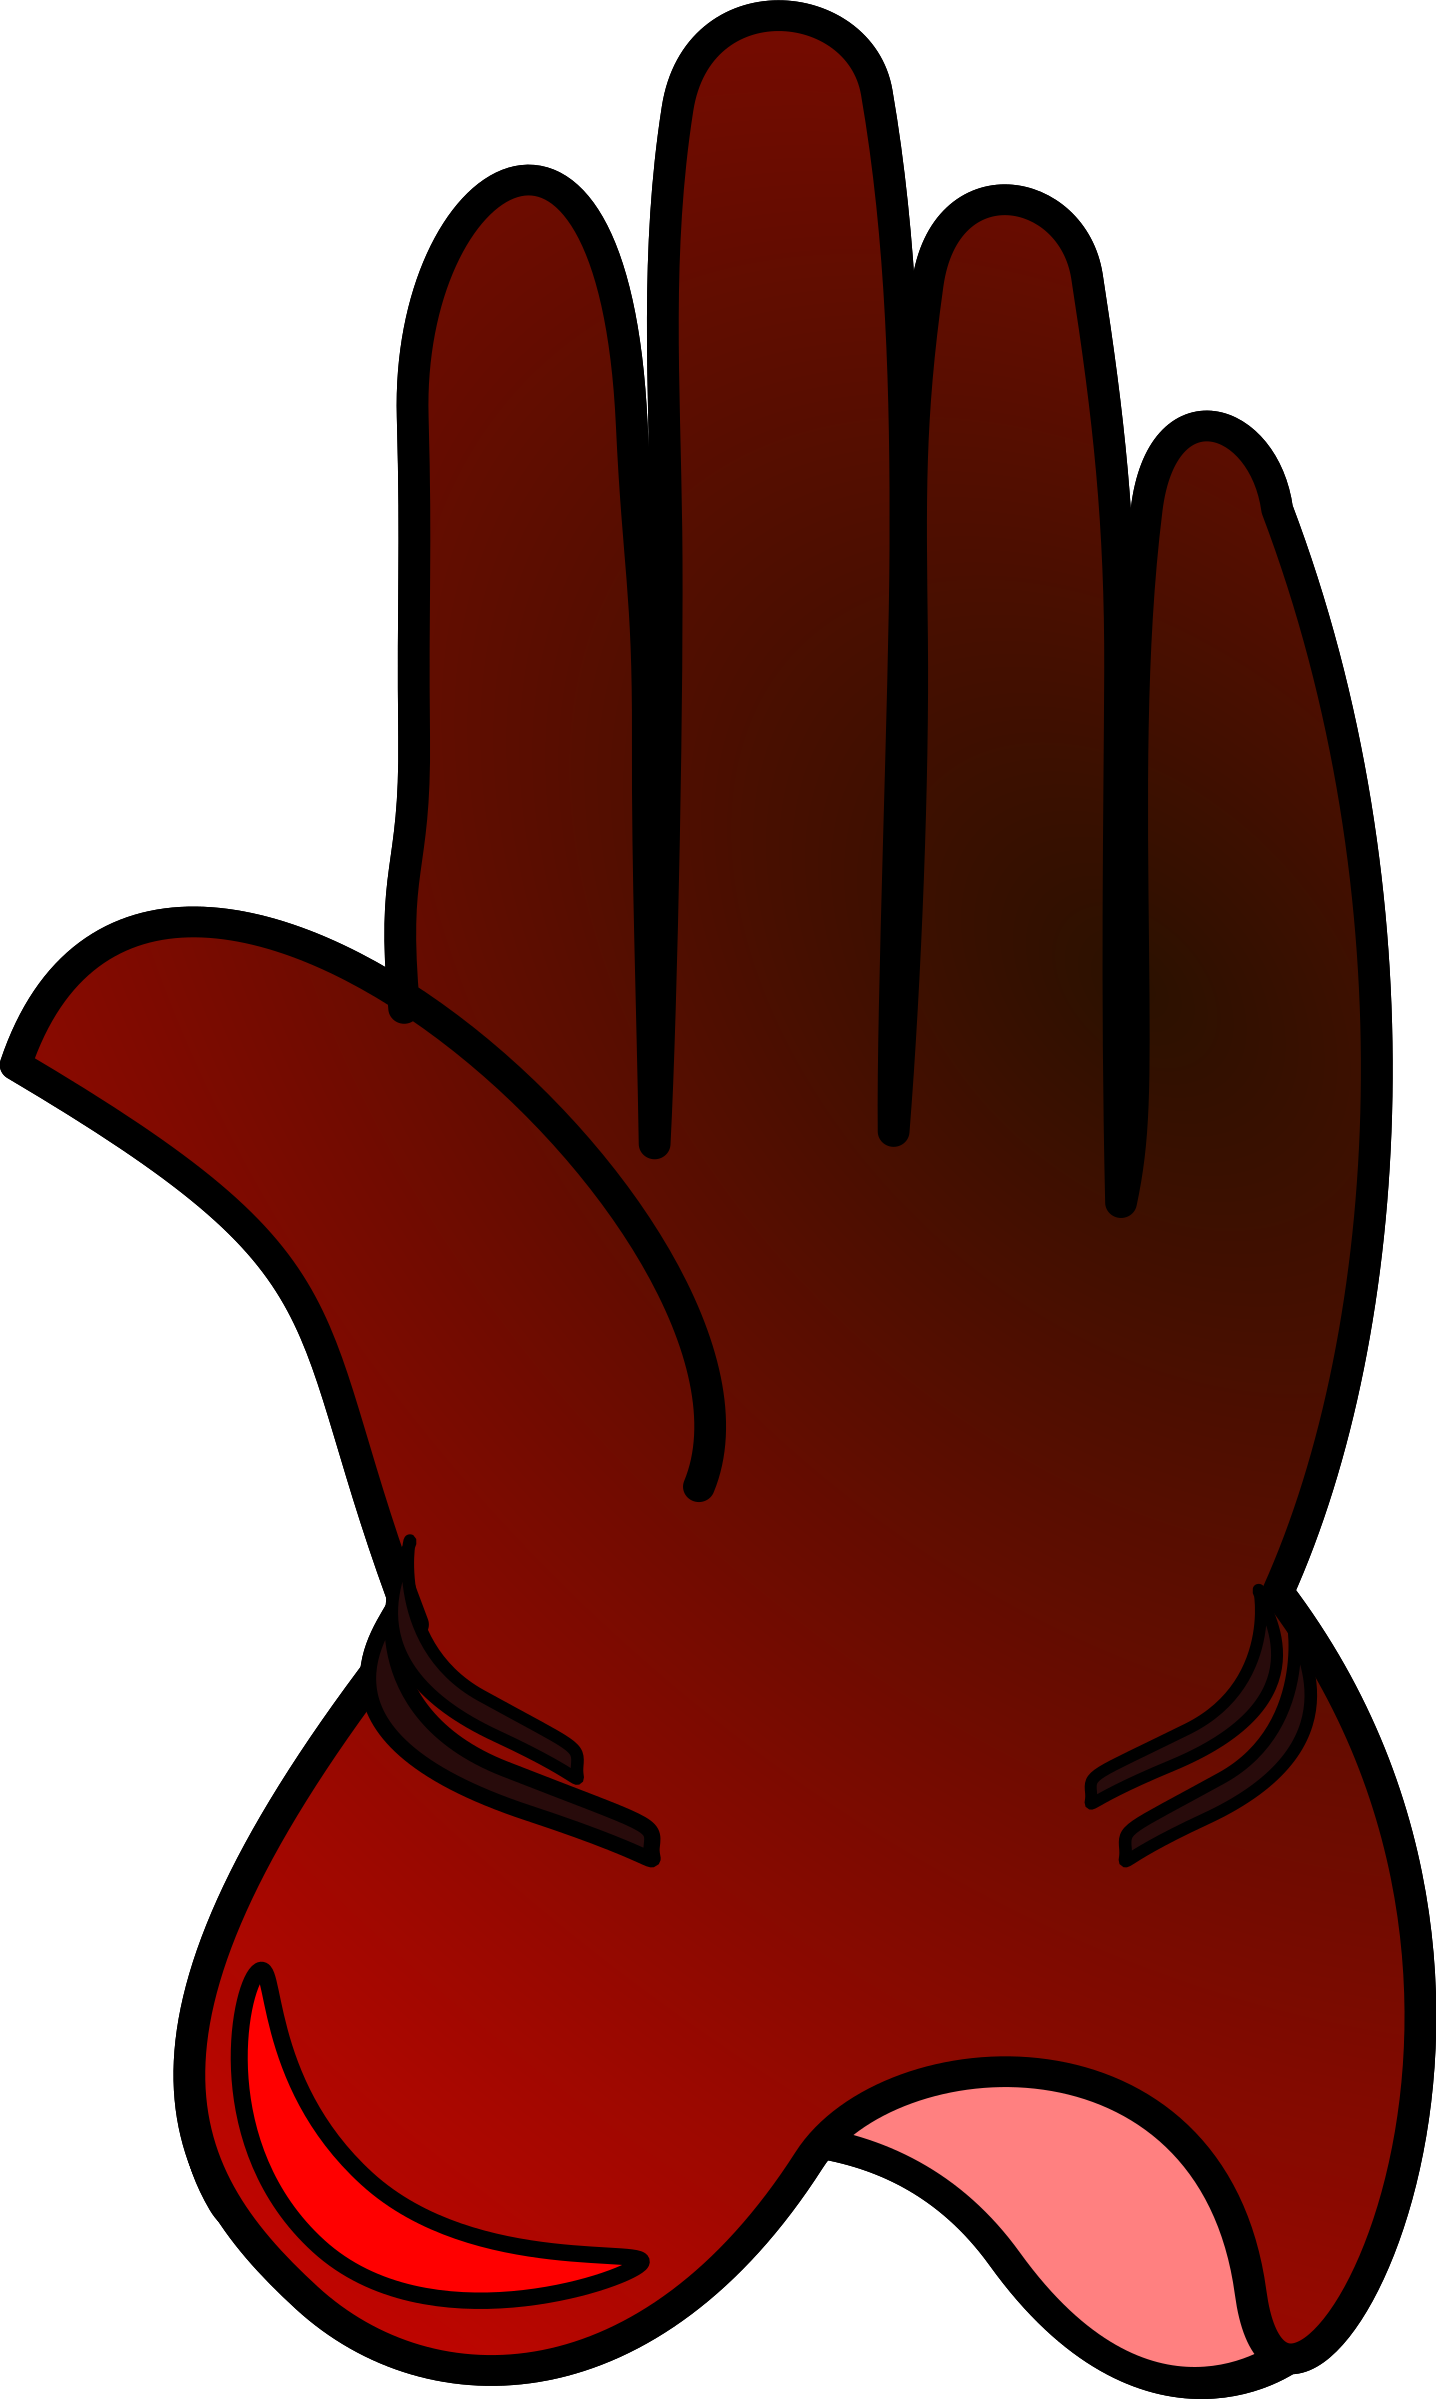 png library library Big image png. Glove clipart.